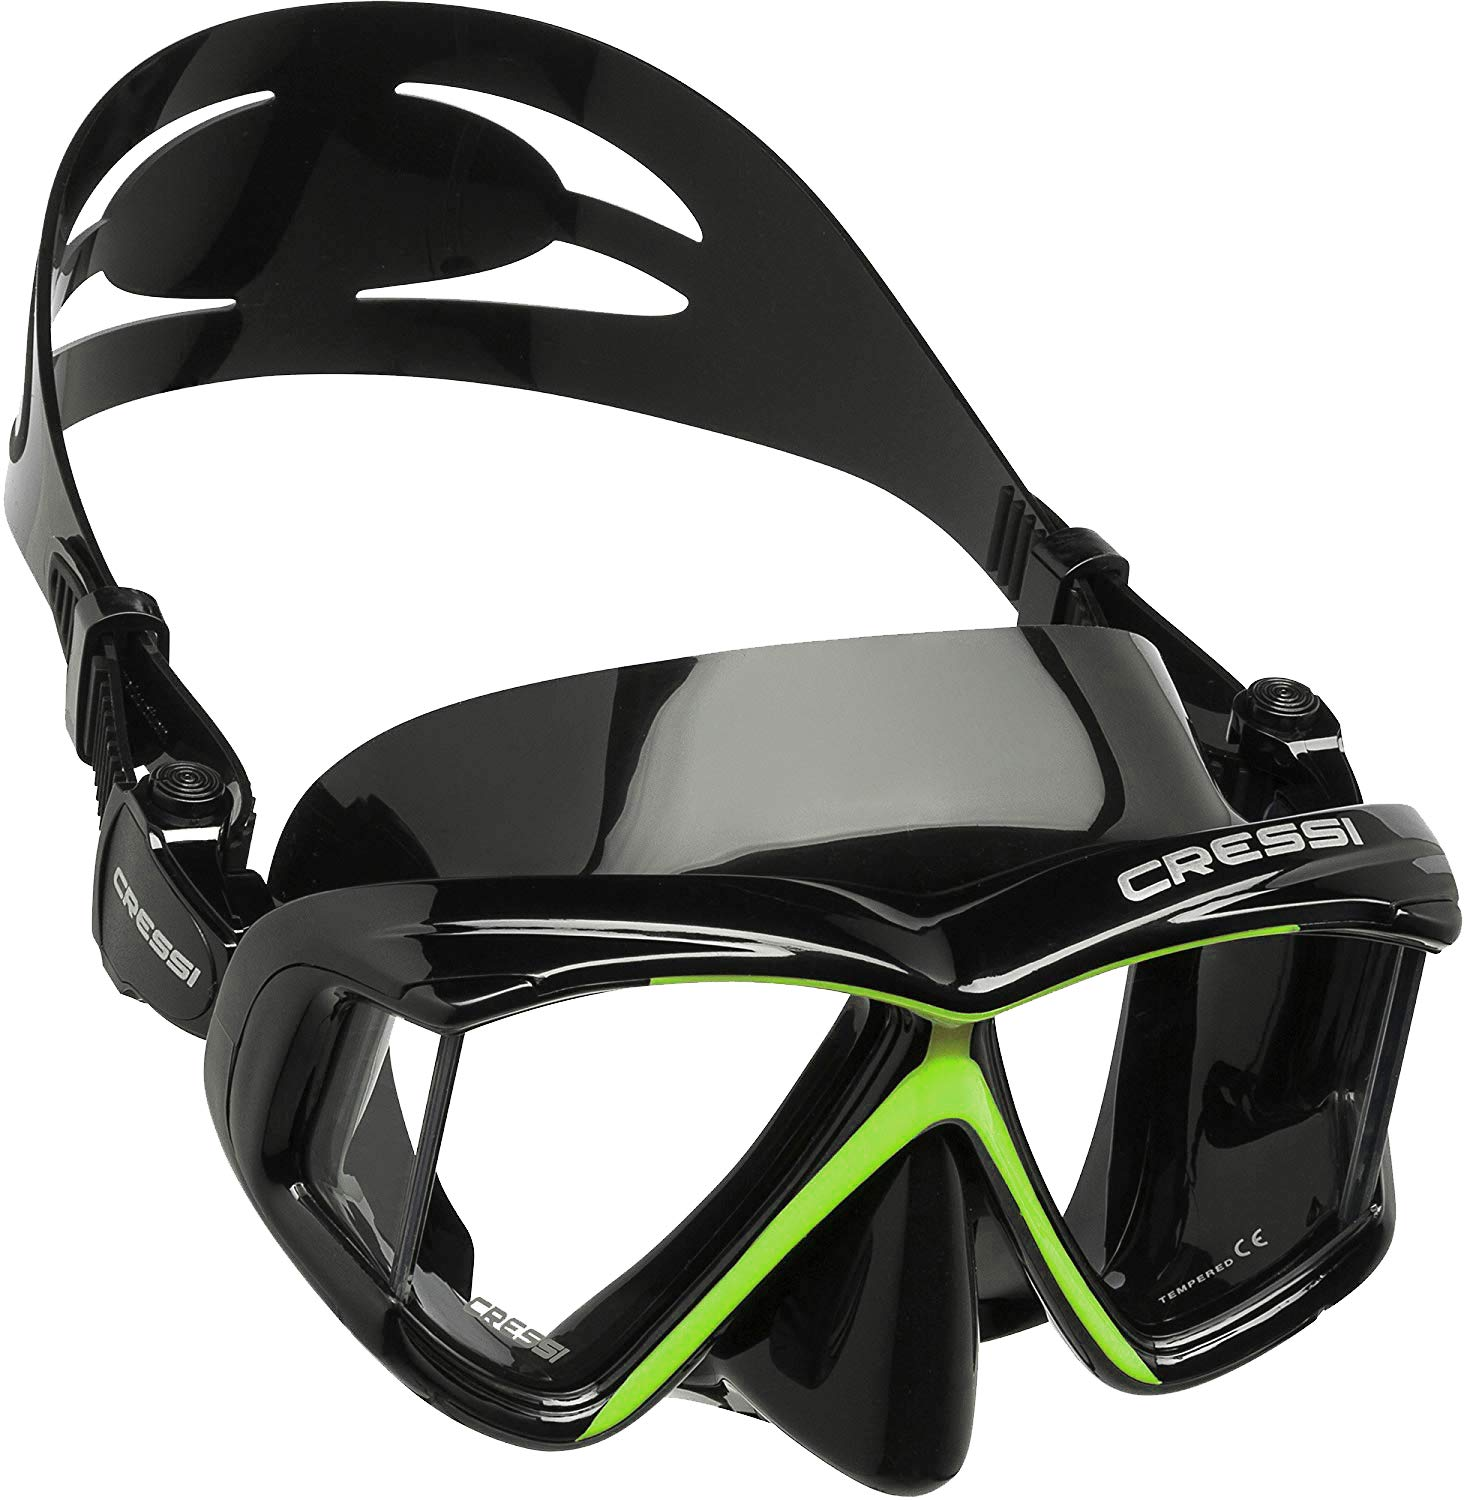 Cressi Panoramic 4 Windows Scuba Dive Mask, with Side View, Lime Green/Black by Cressi